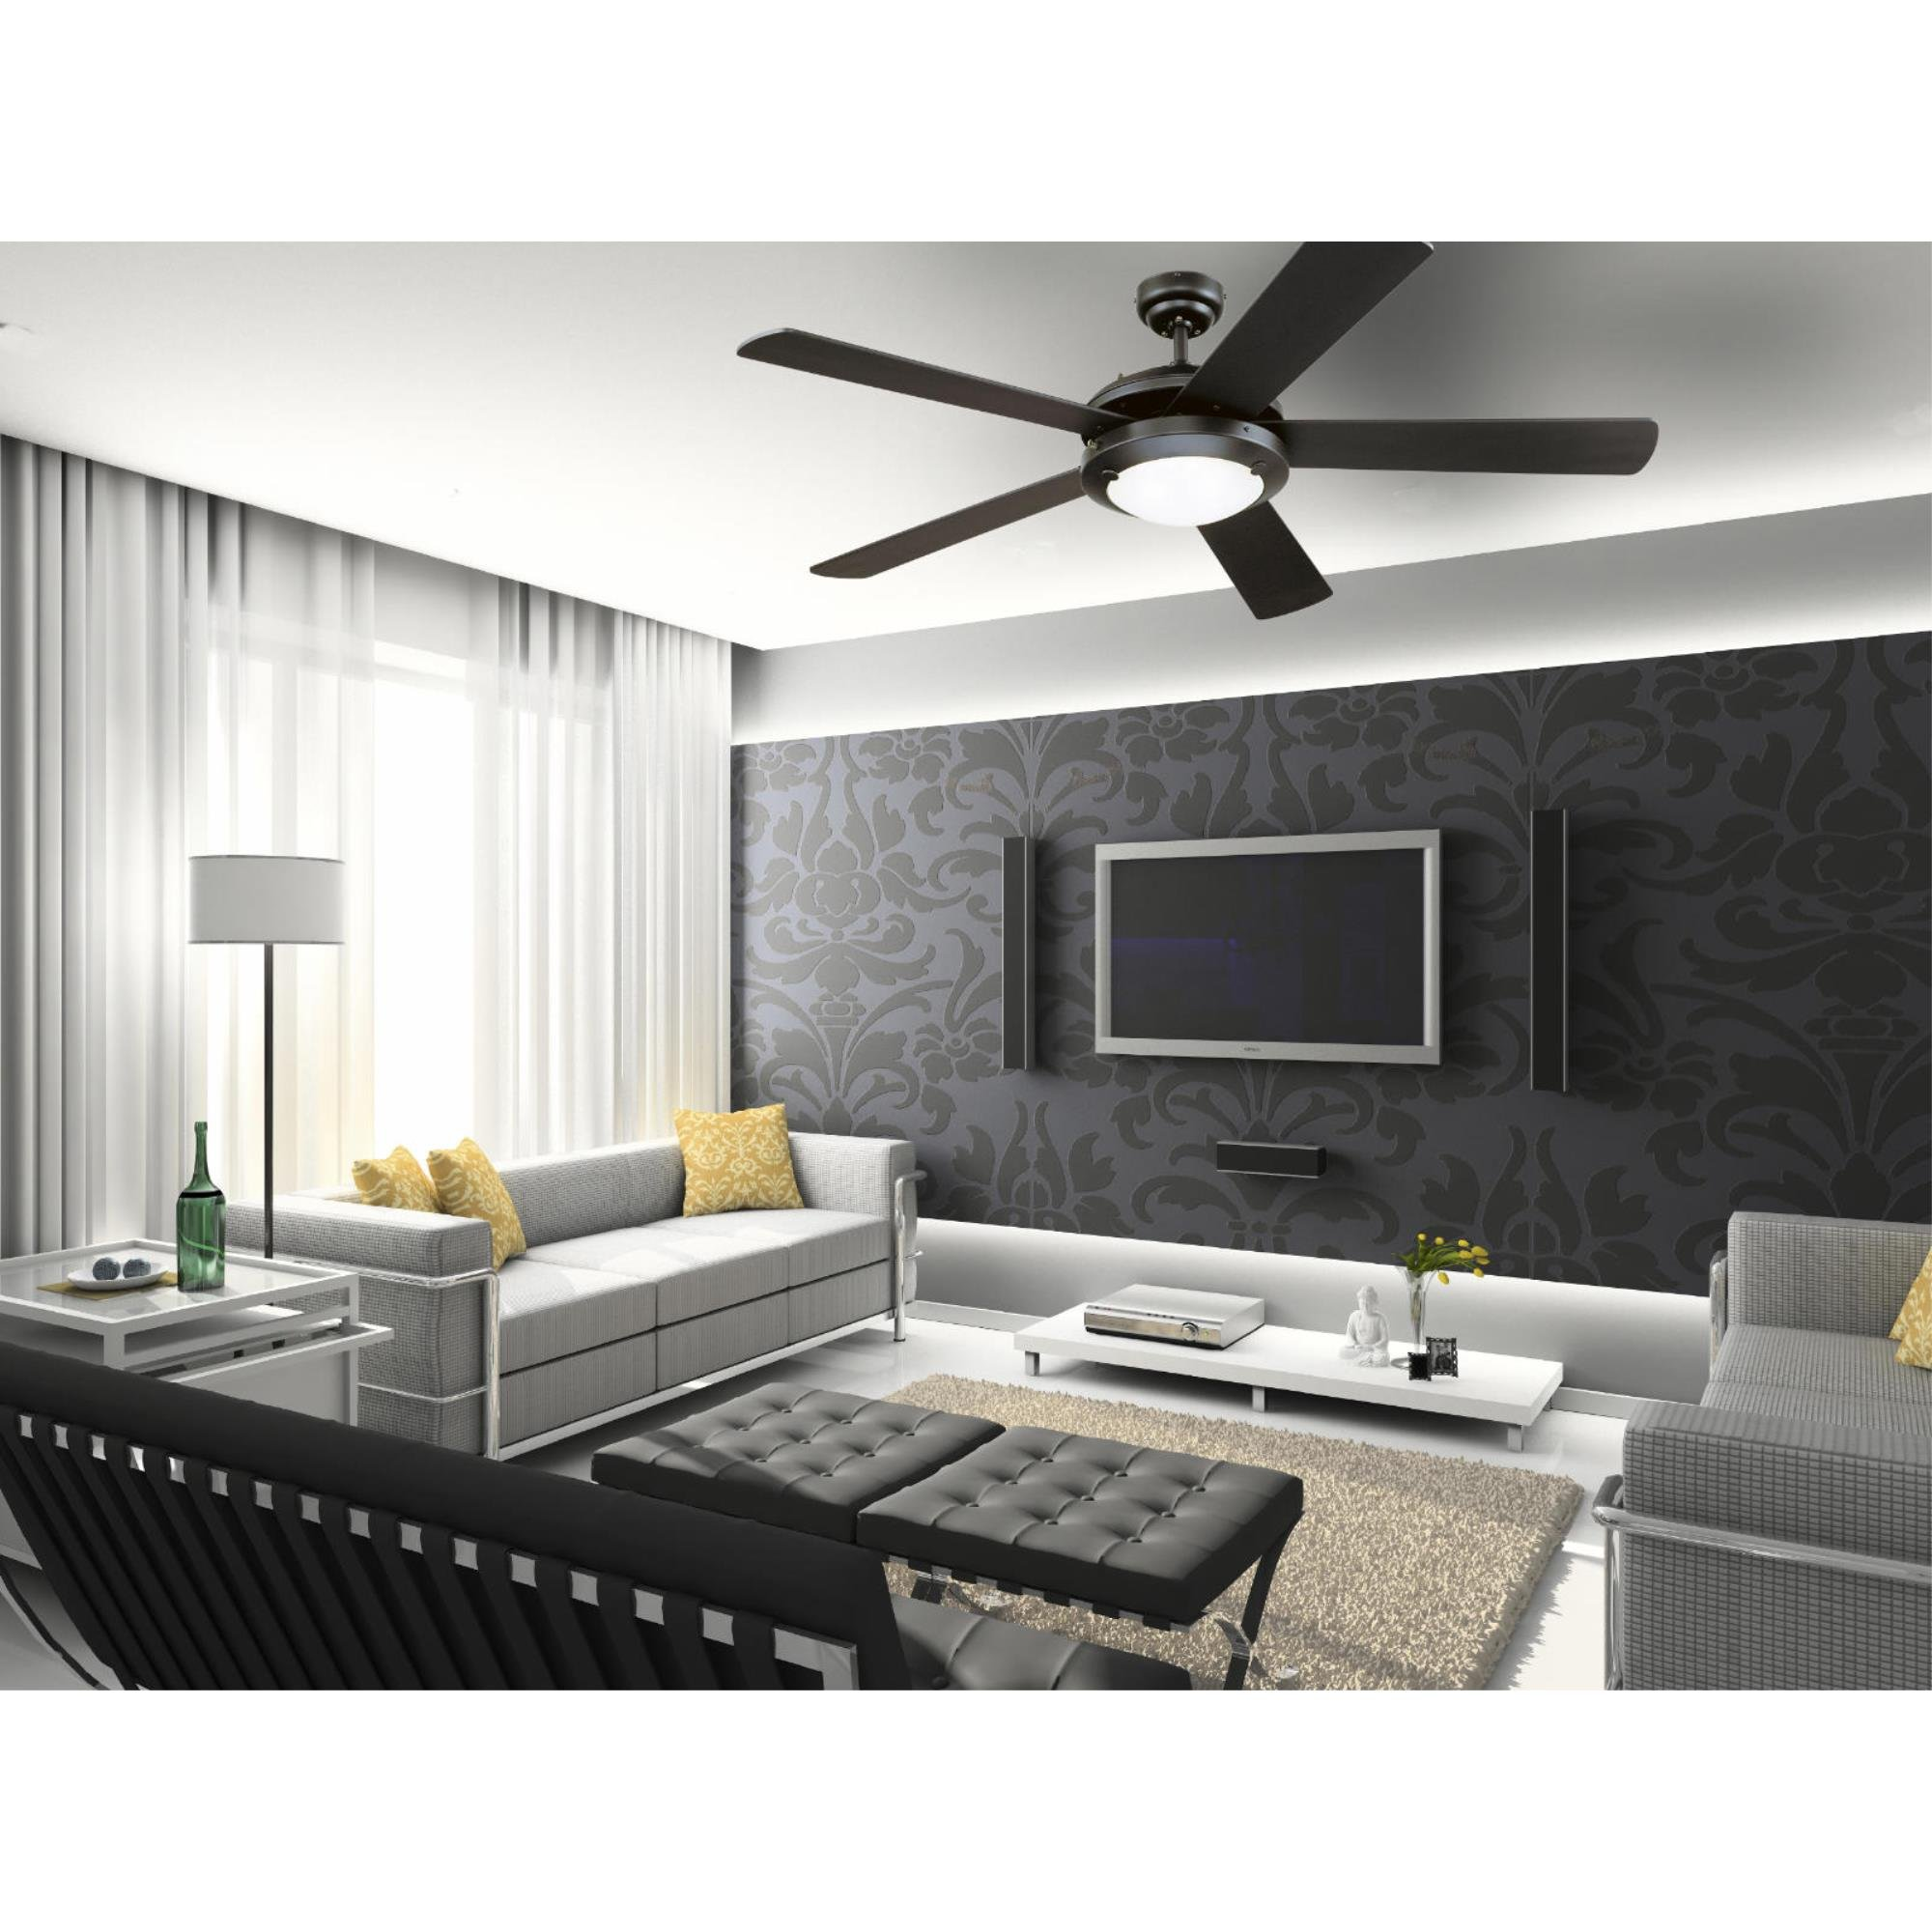 Westinghouse Lighting 7801665 Comet 52-Inch Matte Black Indoor Ceiling Fan, Light Kit with Frosted Glass by Westinghouse Lighting (Image #3)